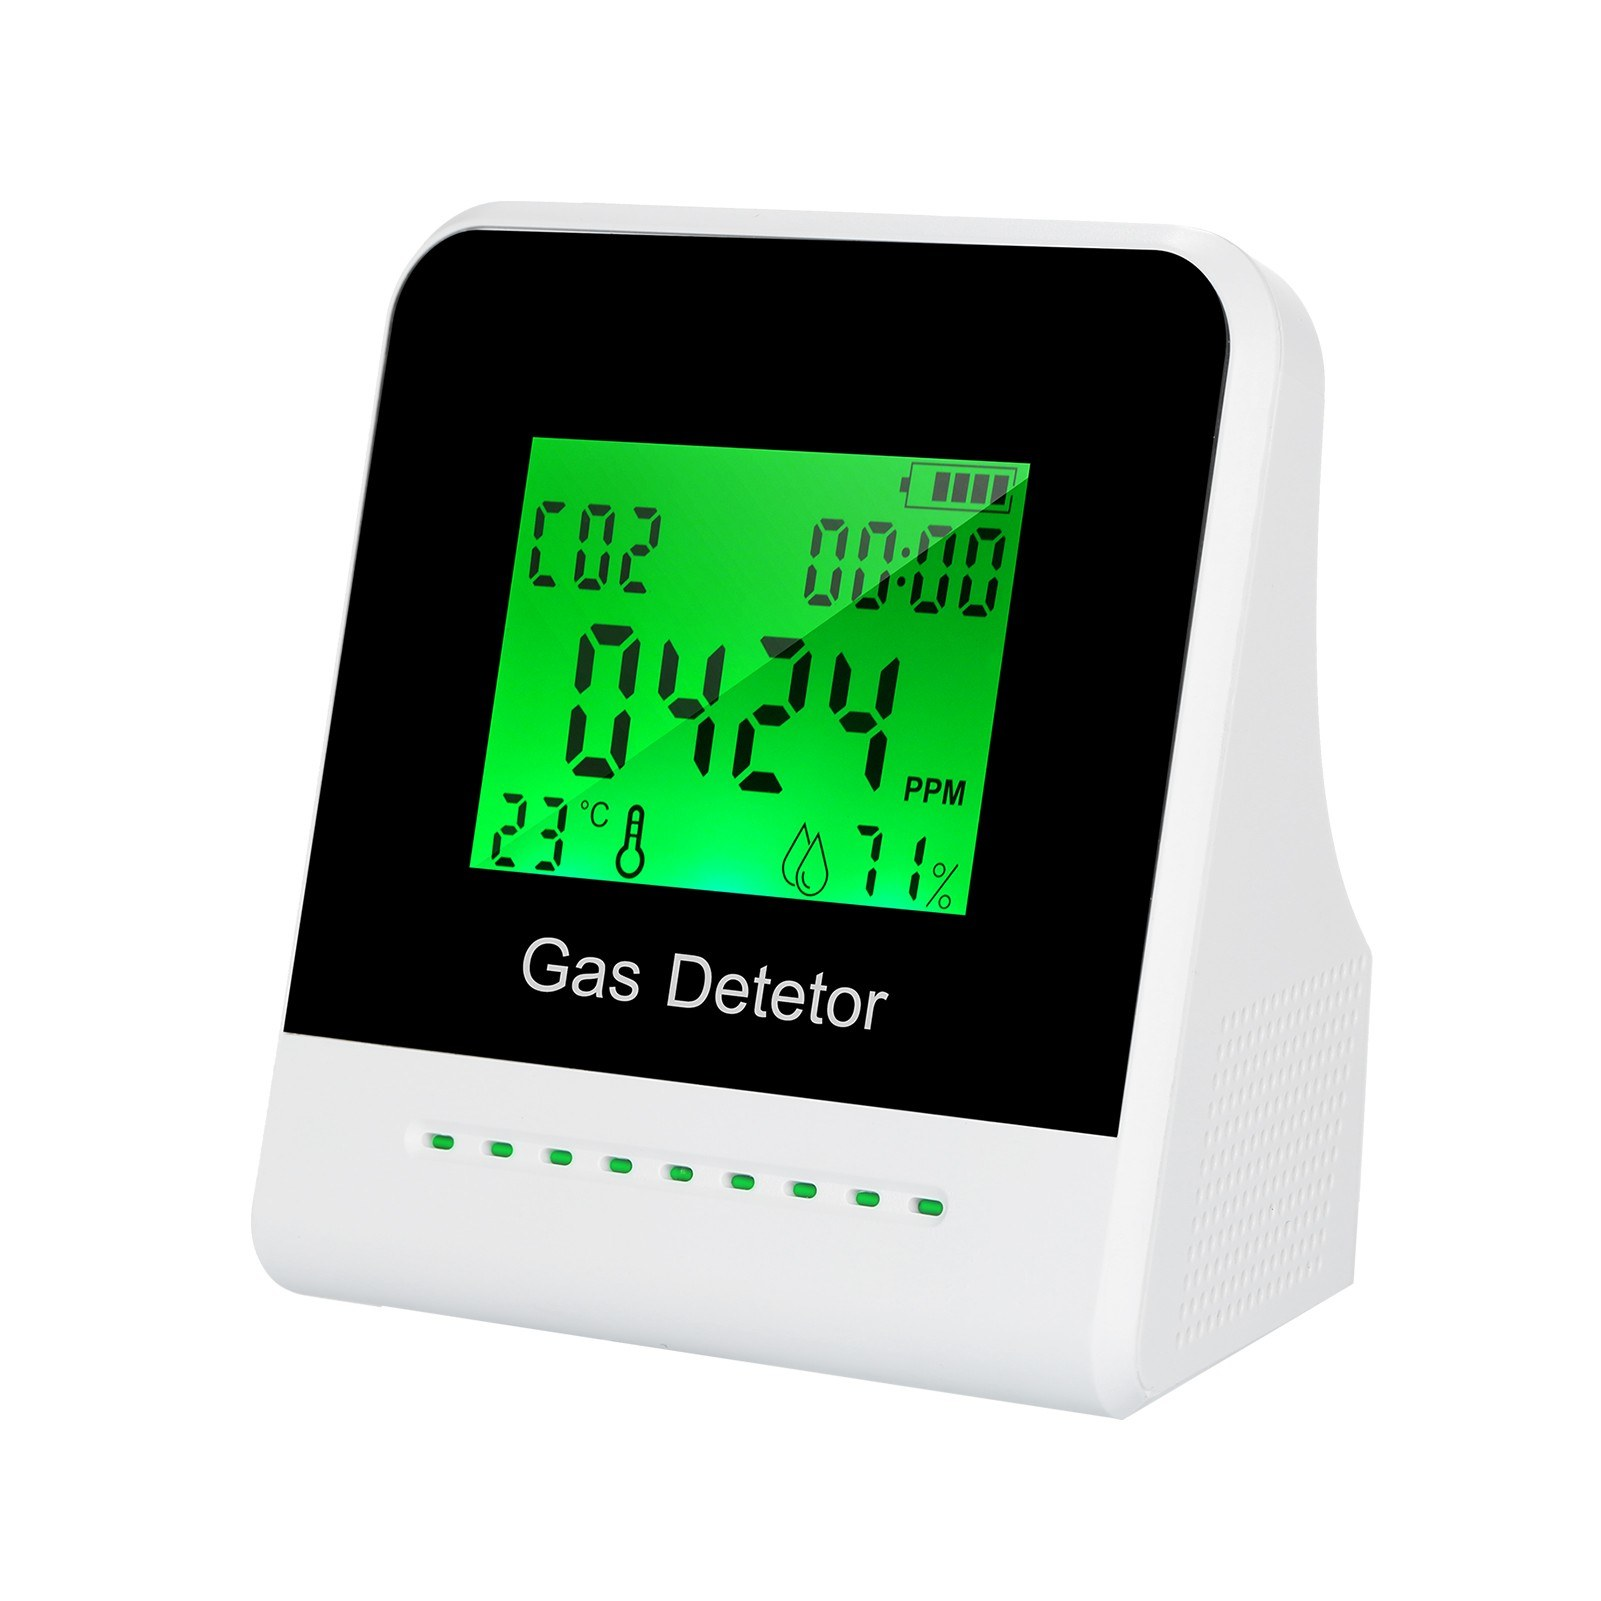 Tomtop - 34% OFF KKmoon CO2 Monitor Carbon Dioxide Tester, Free Shipping $26.49